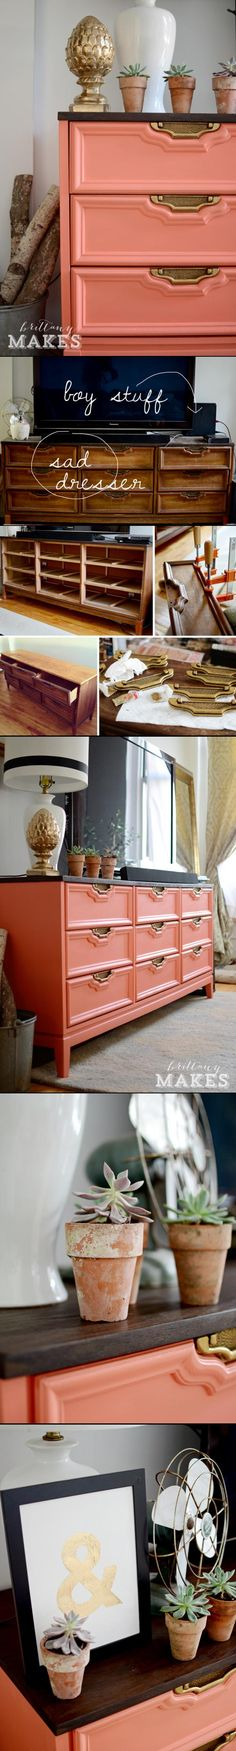 Coral Dresser Makeover, love this transformation!